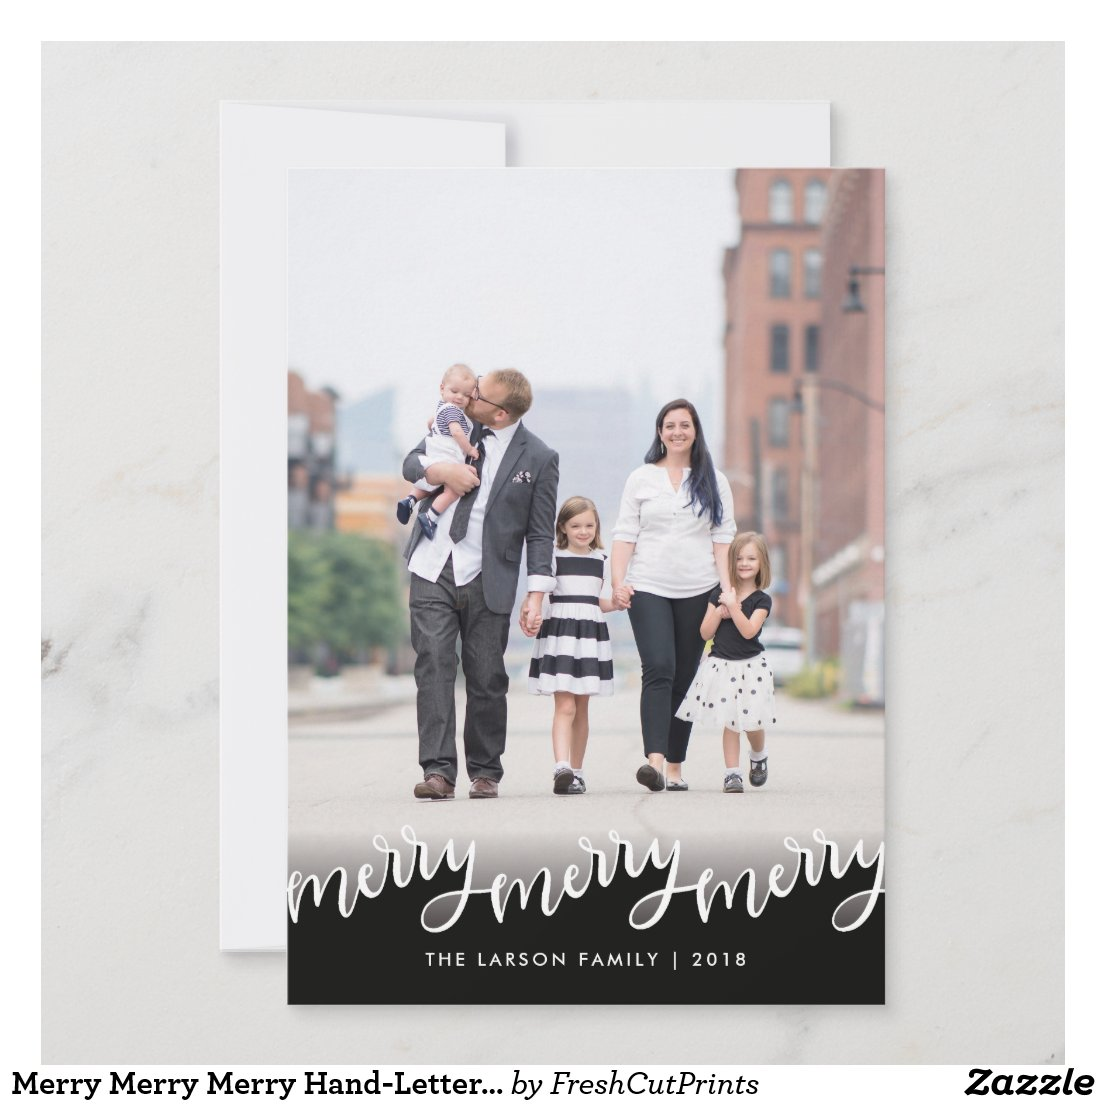 Merry Merry Merry Hand-Lettered Overlay Christmas Holiday Card